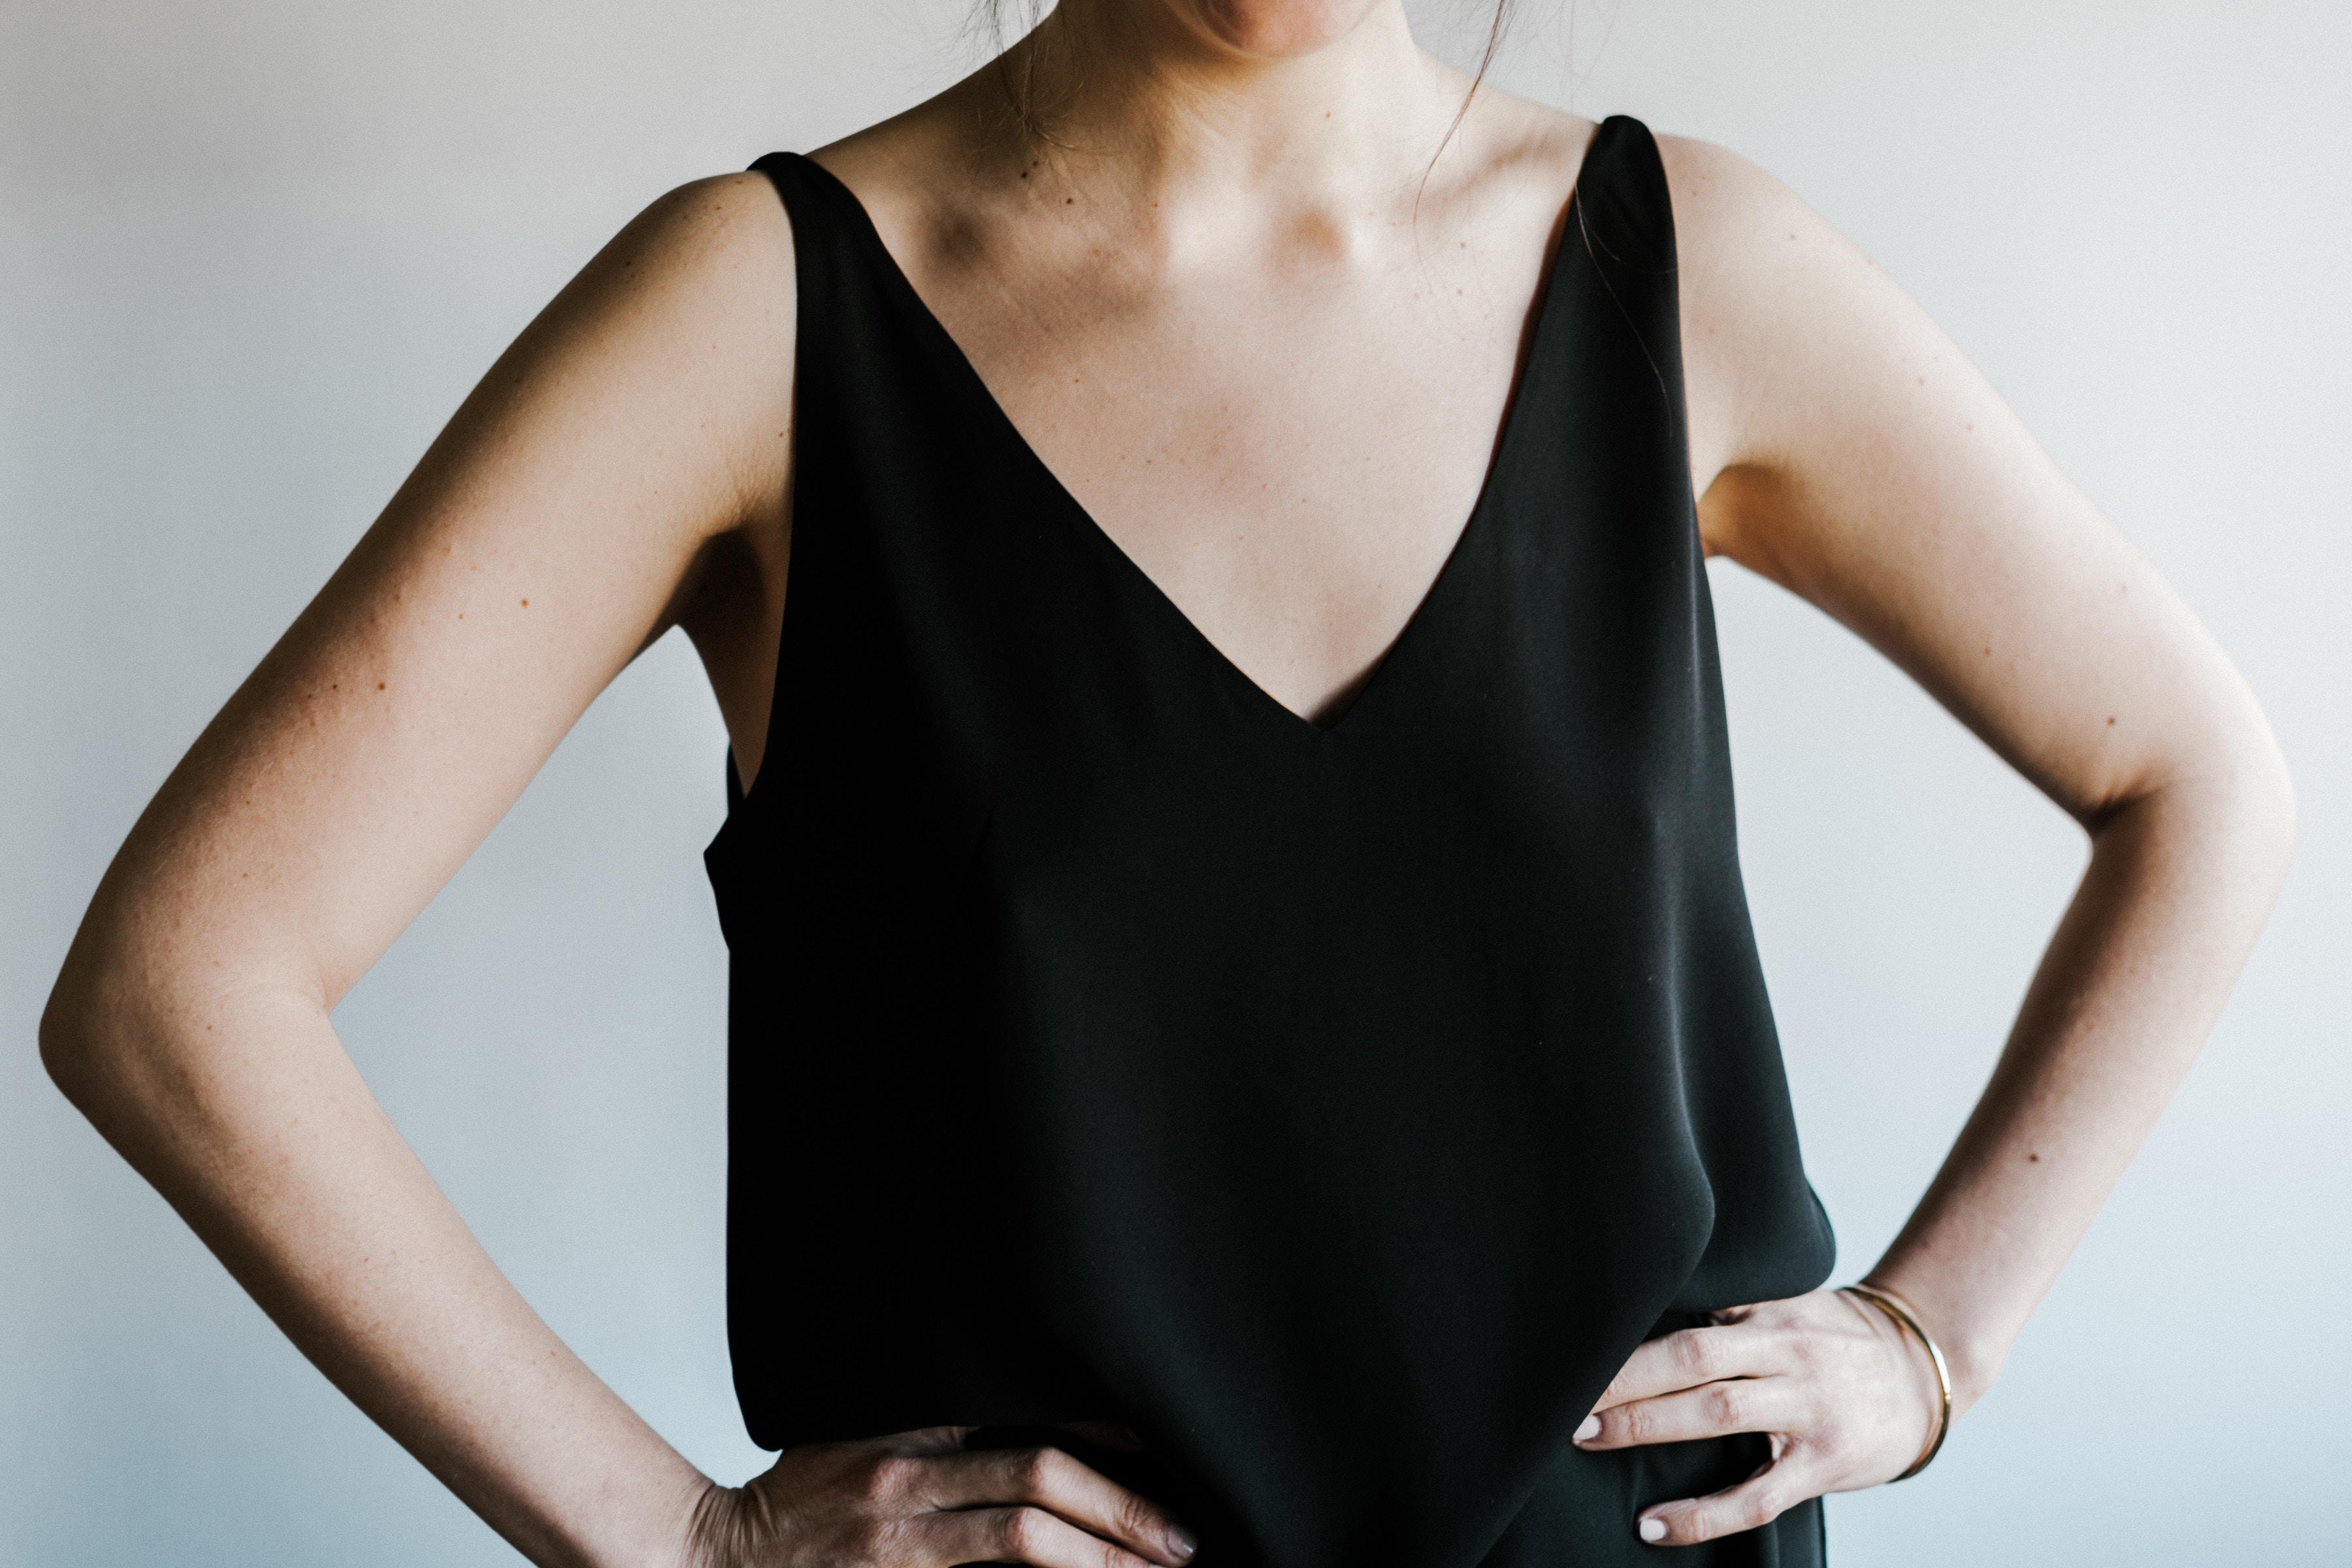 The Unspoken Messages of Dress Codes: Uncovering Bias and Power